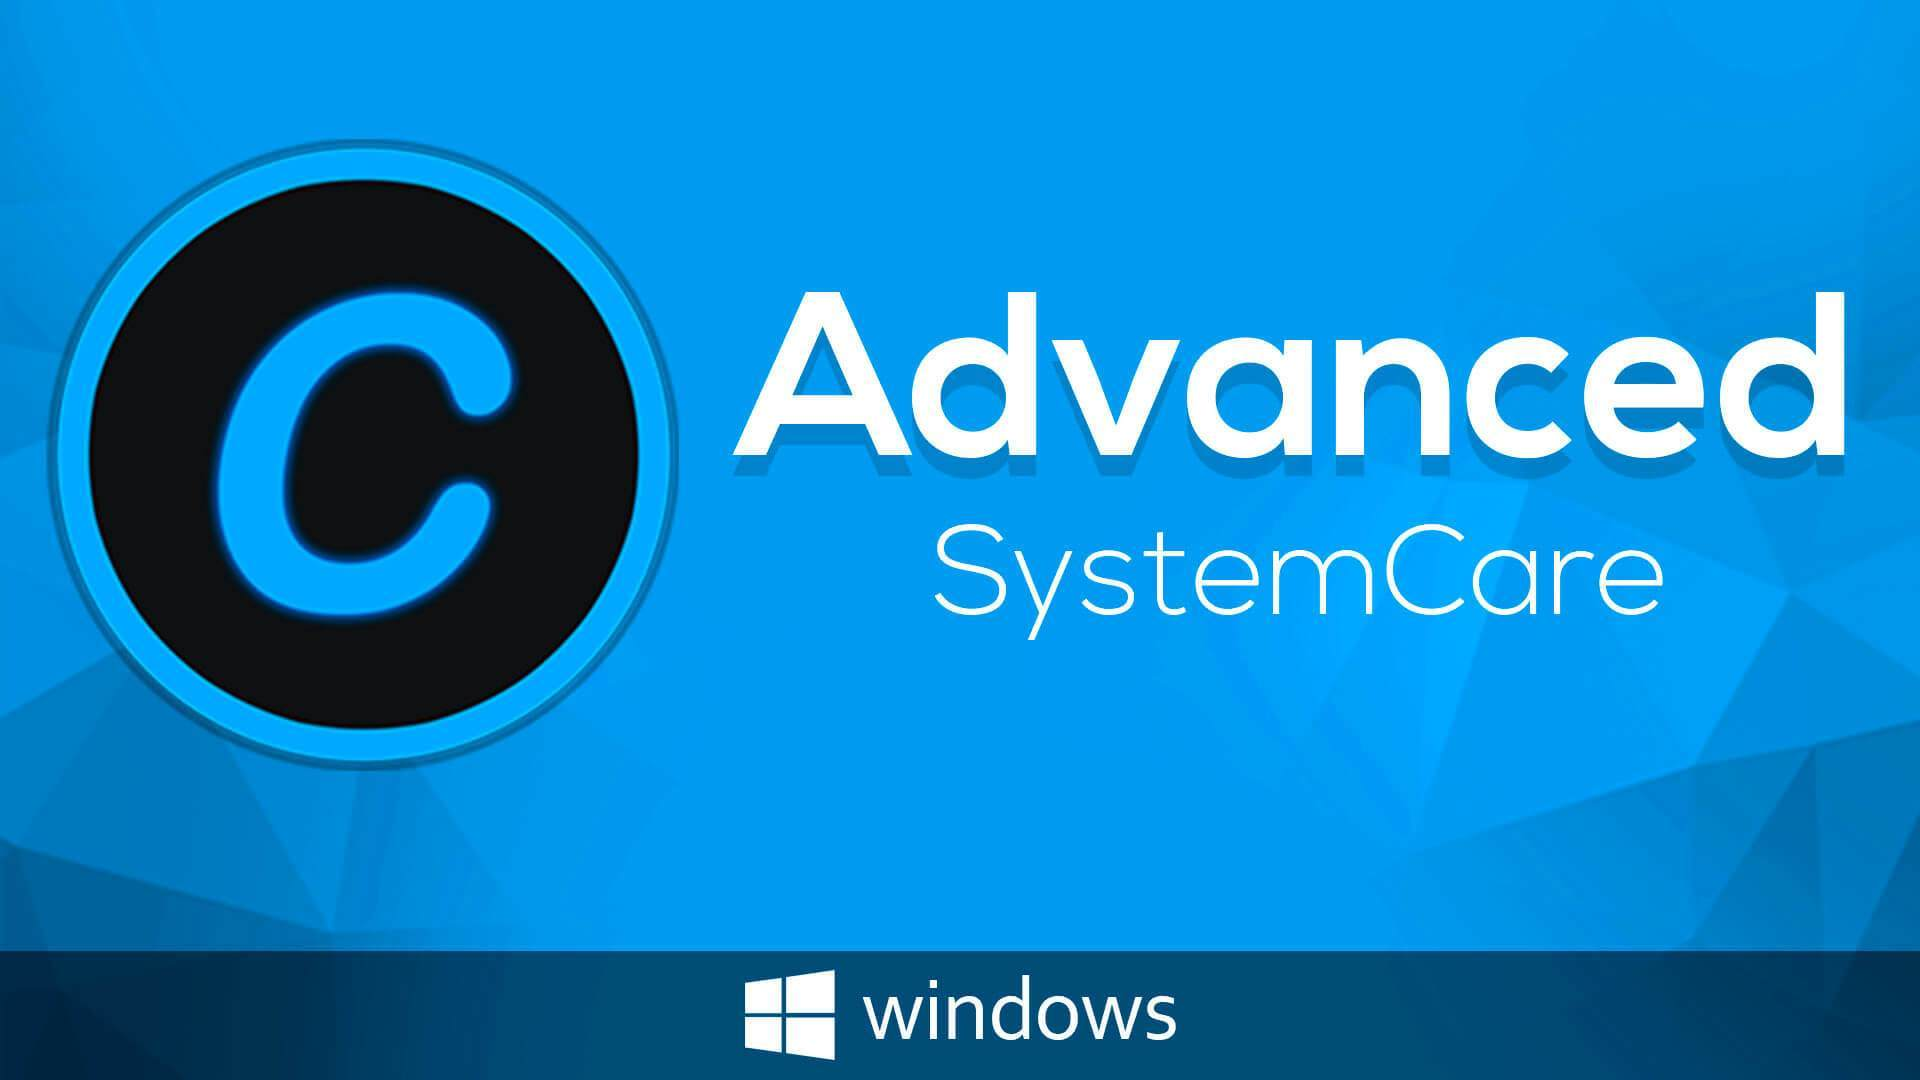 Advanced SystemCare Pro Crack 13.6.0.291 License Key 2020 Free Download